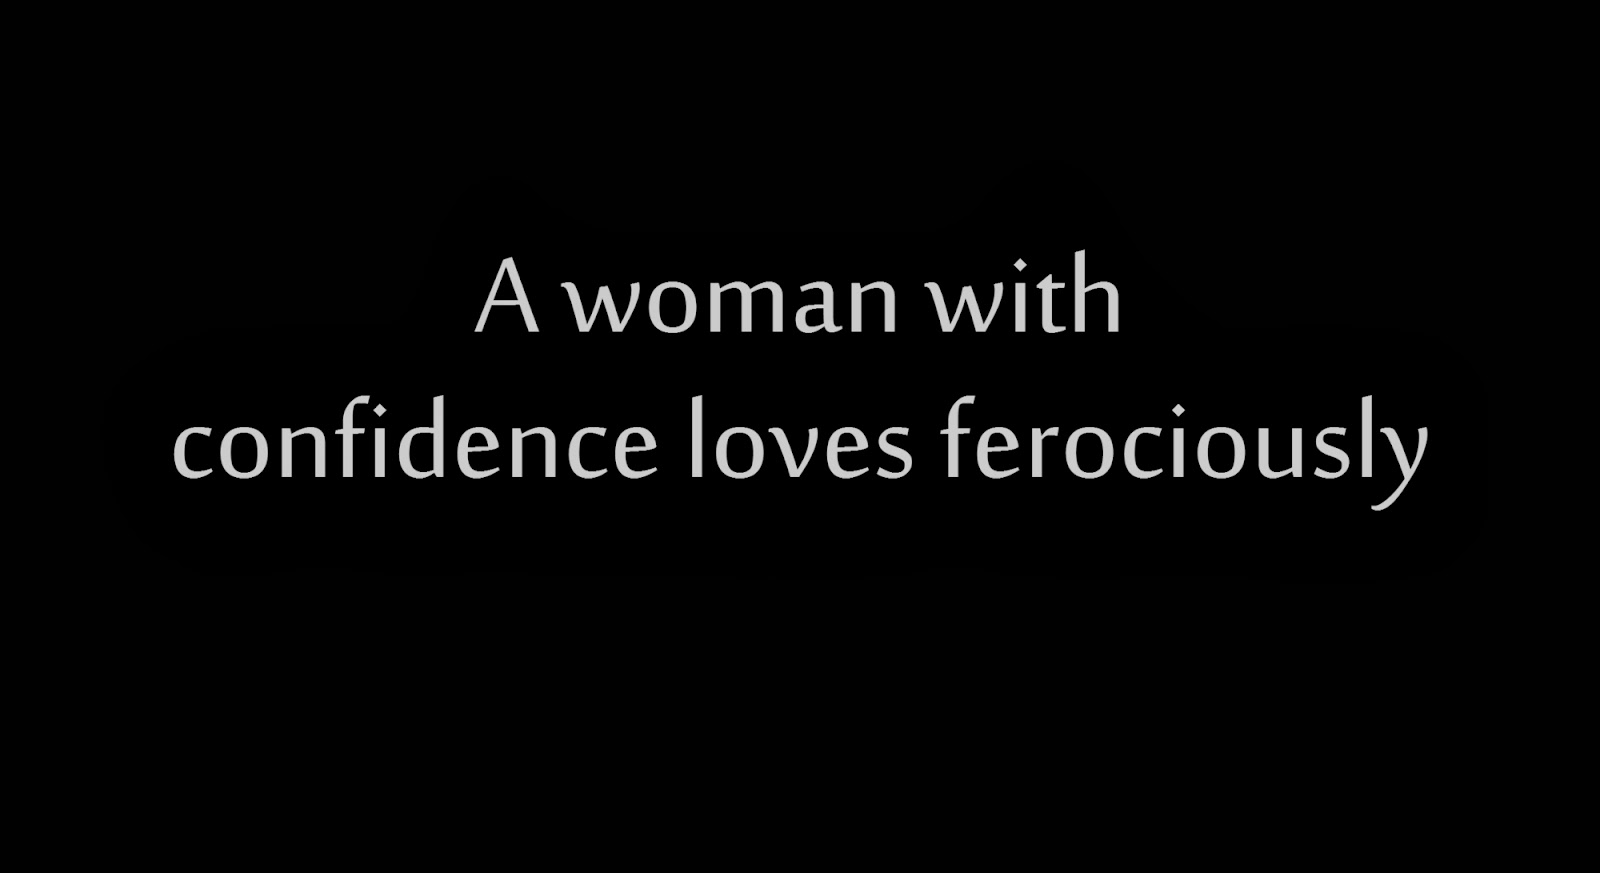 A woman with confidence loves ferociously